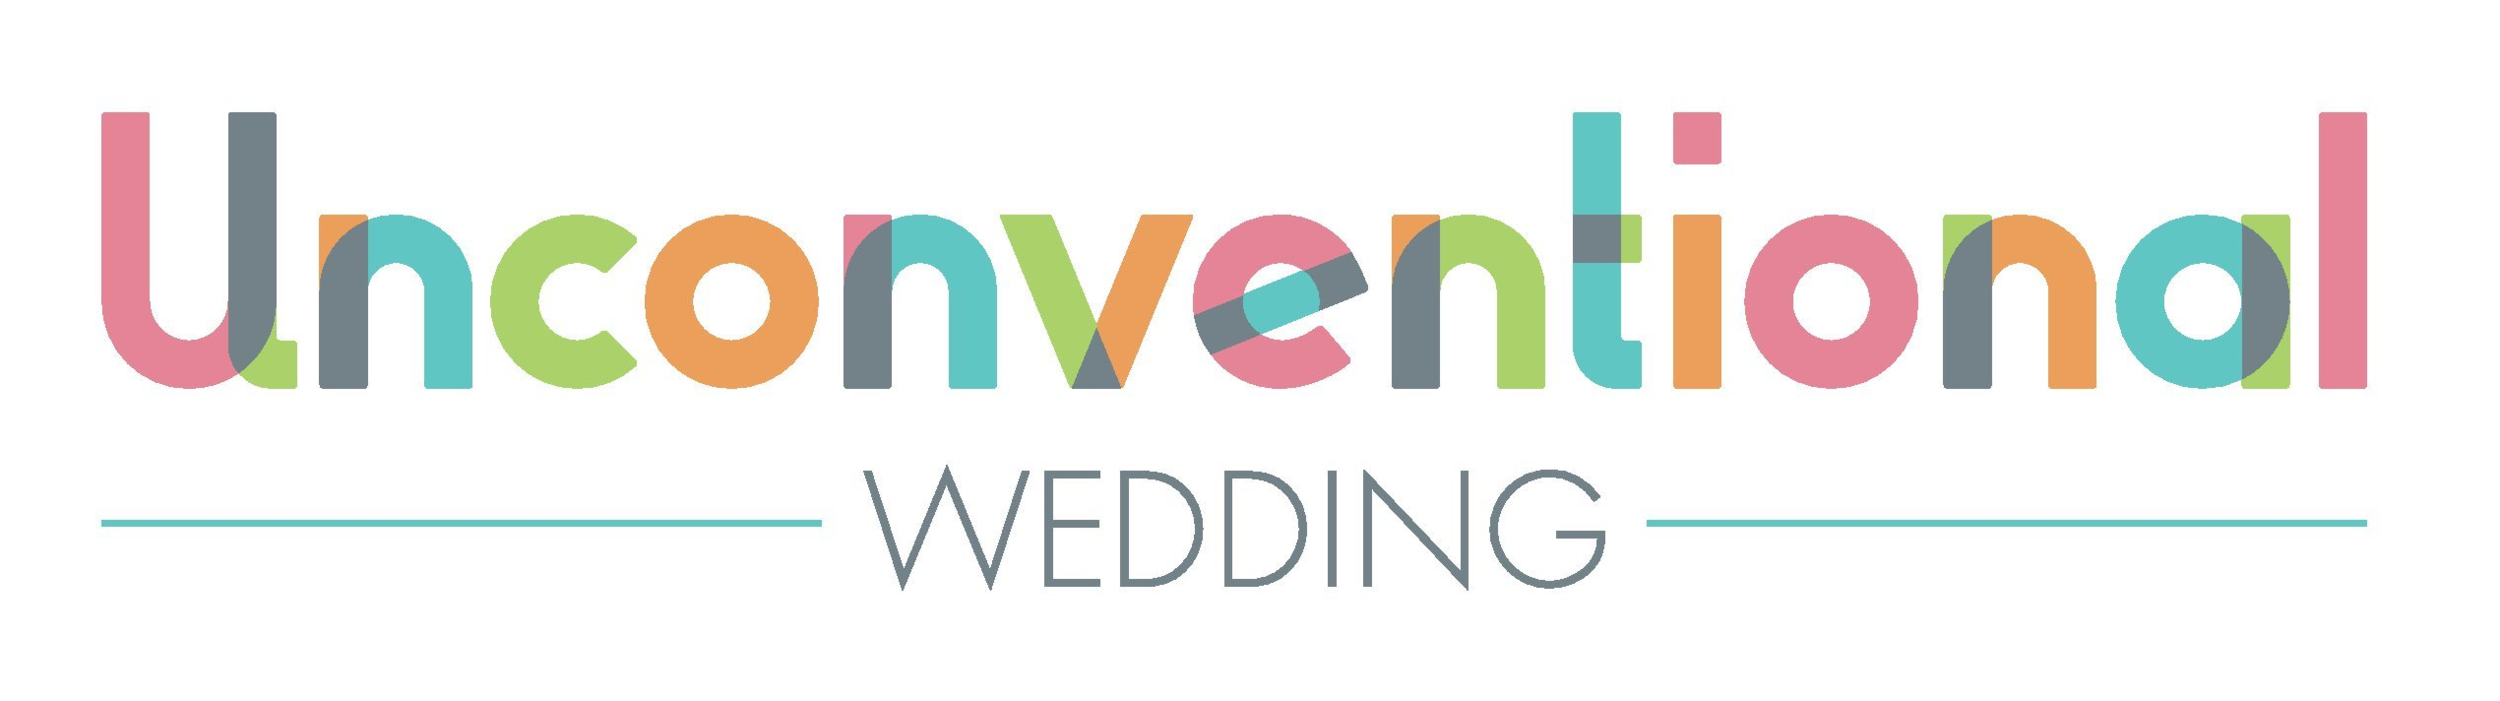 Unconventional Wedding Cropped logo PNG format.png